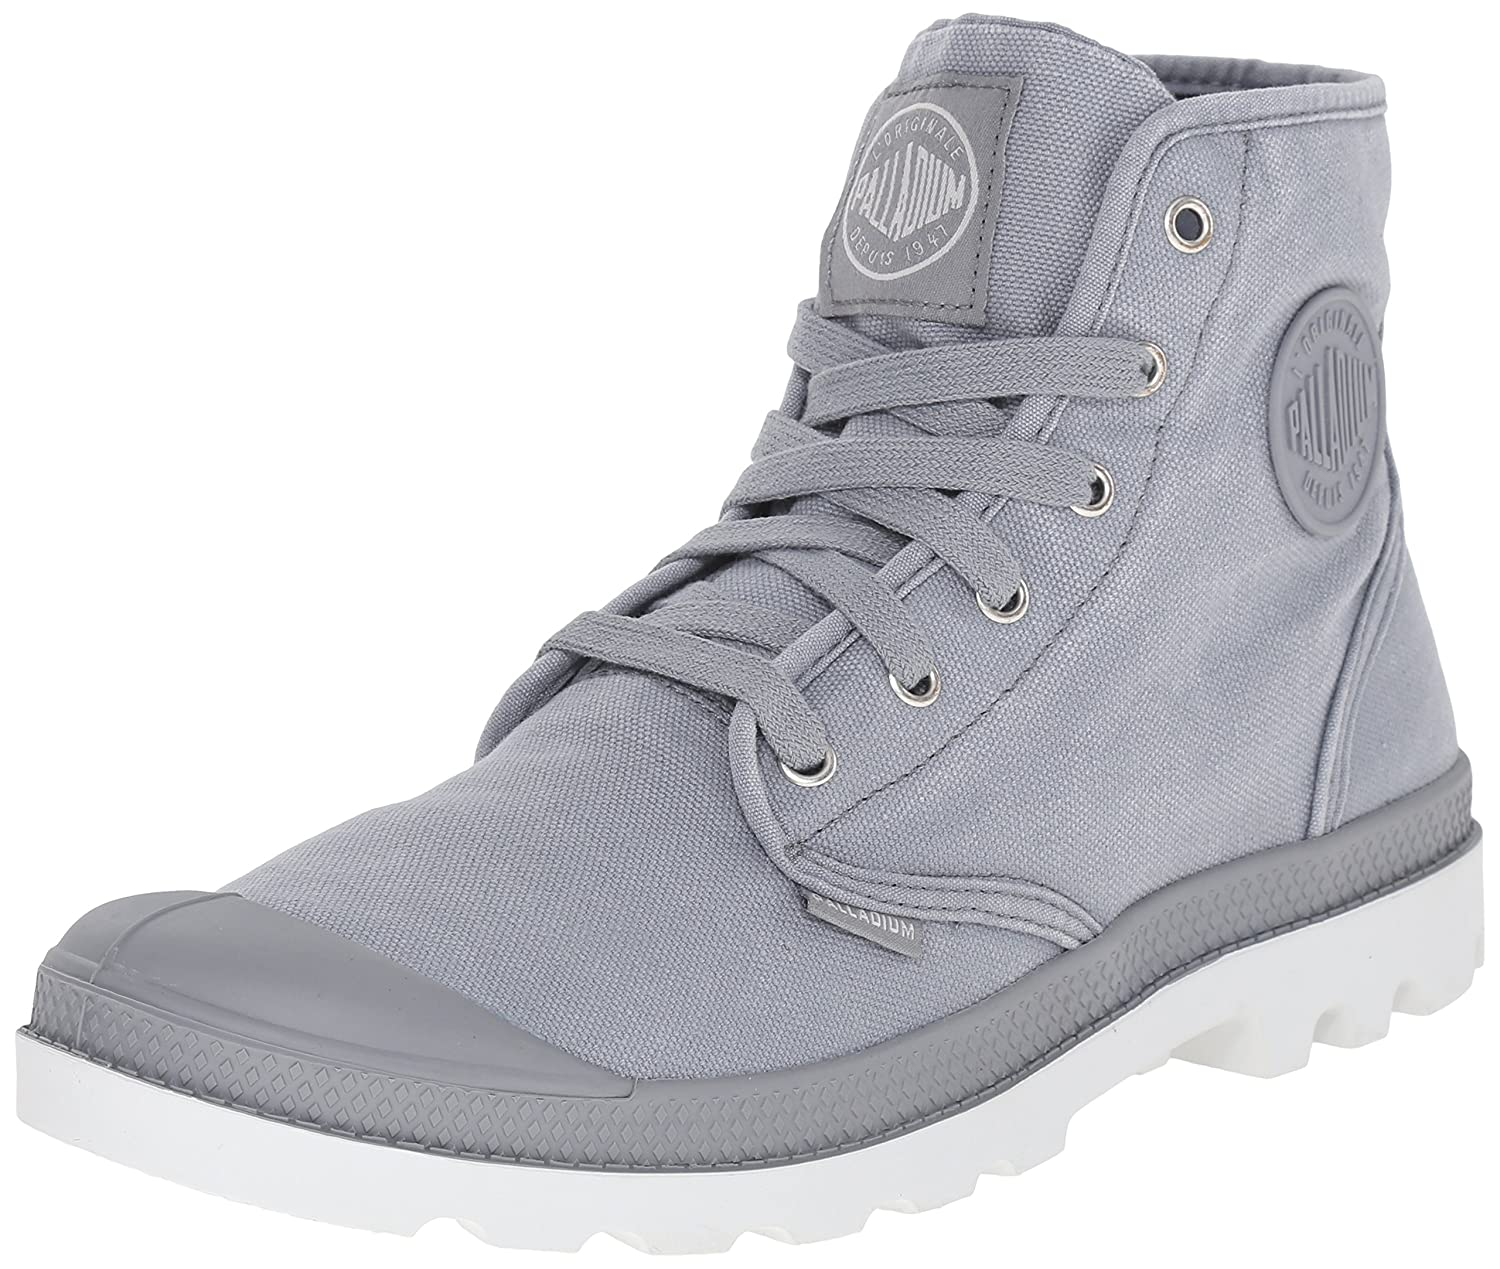 Palladium Women's Pampa Hi Canvas Boot B0113ON486 13 D(M) US|Monument